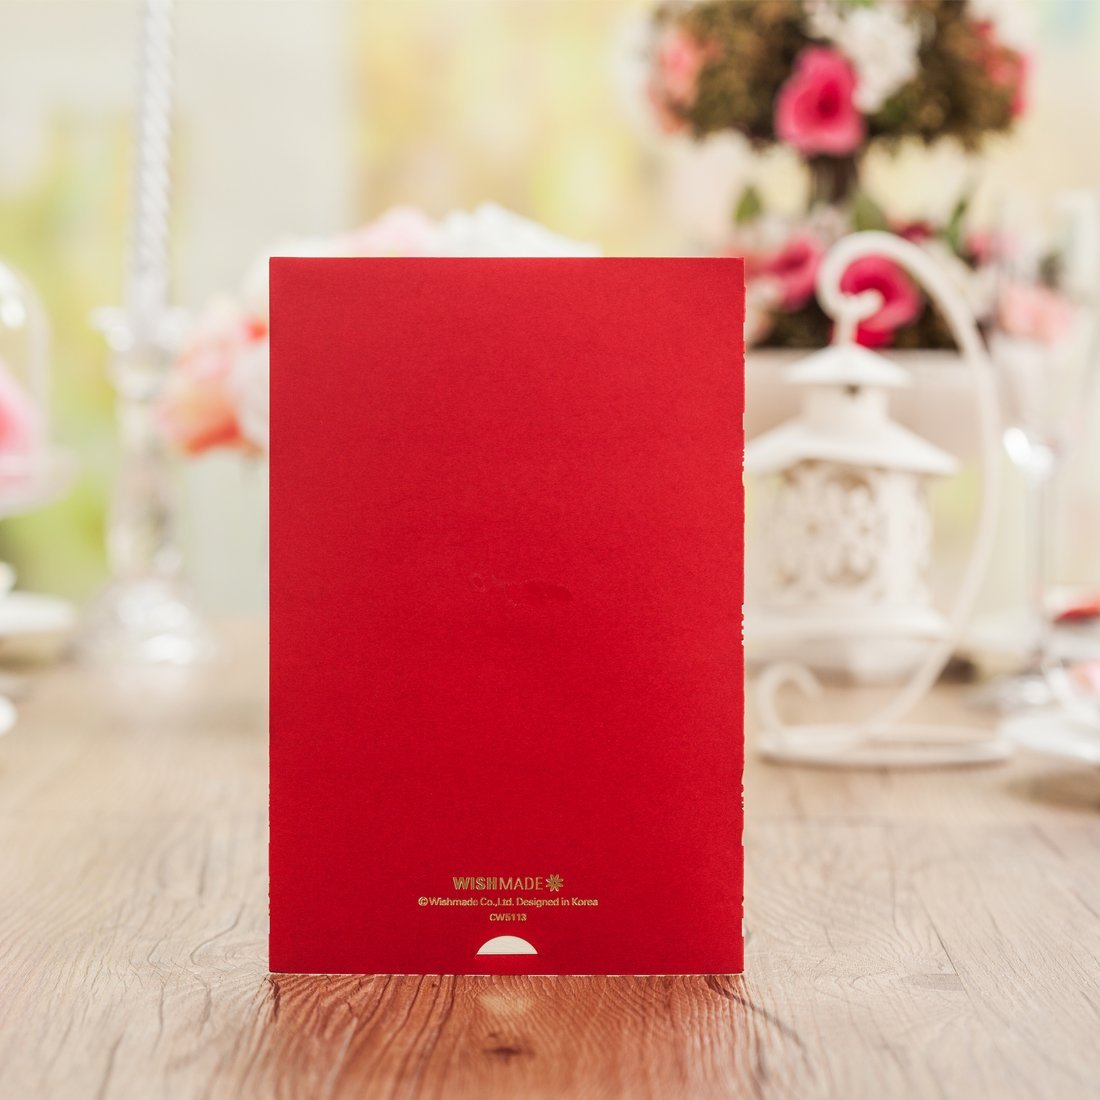 Wishmade 50x Elegant Red Laser Cut Wedding Invitations Cards with ...